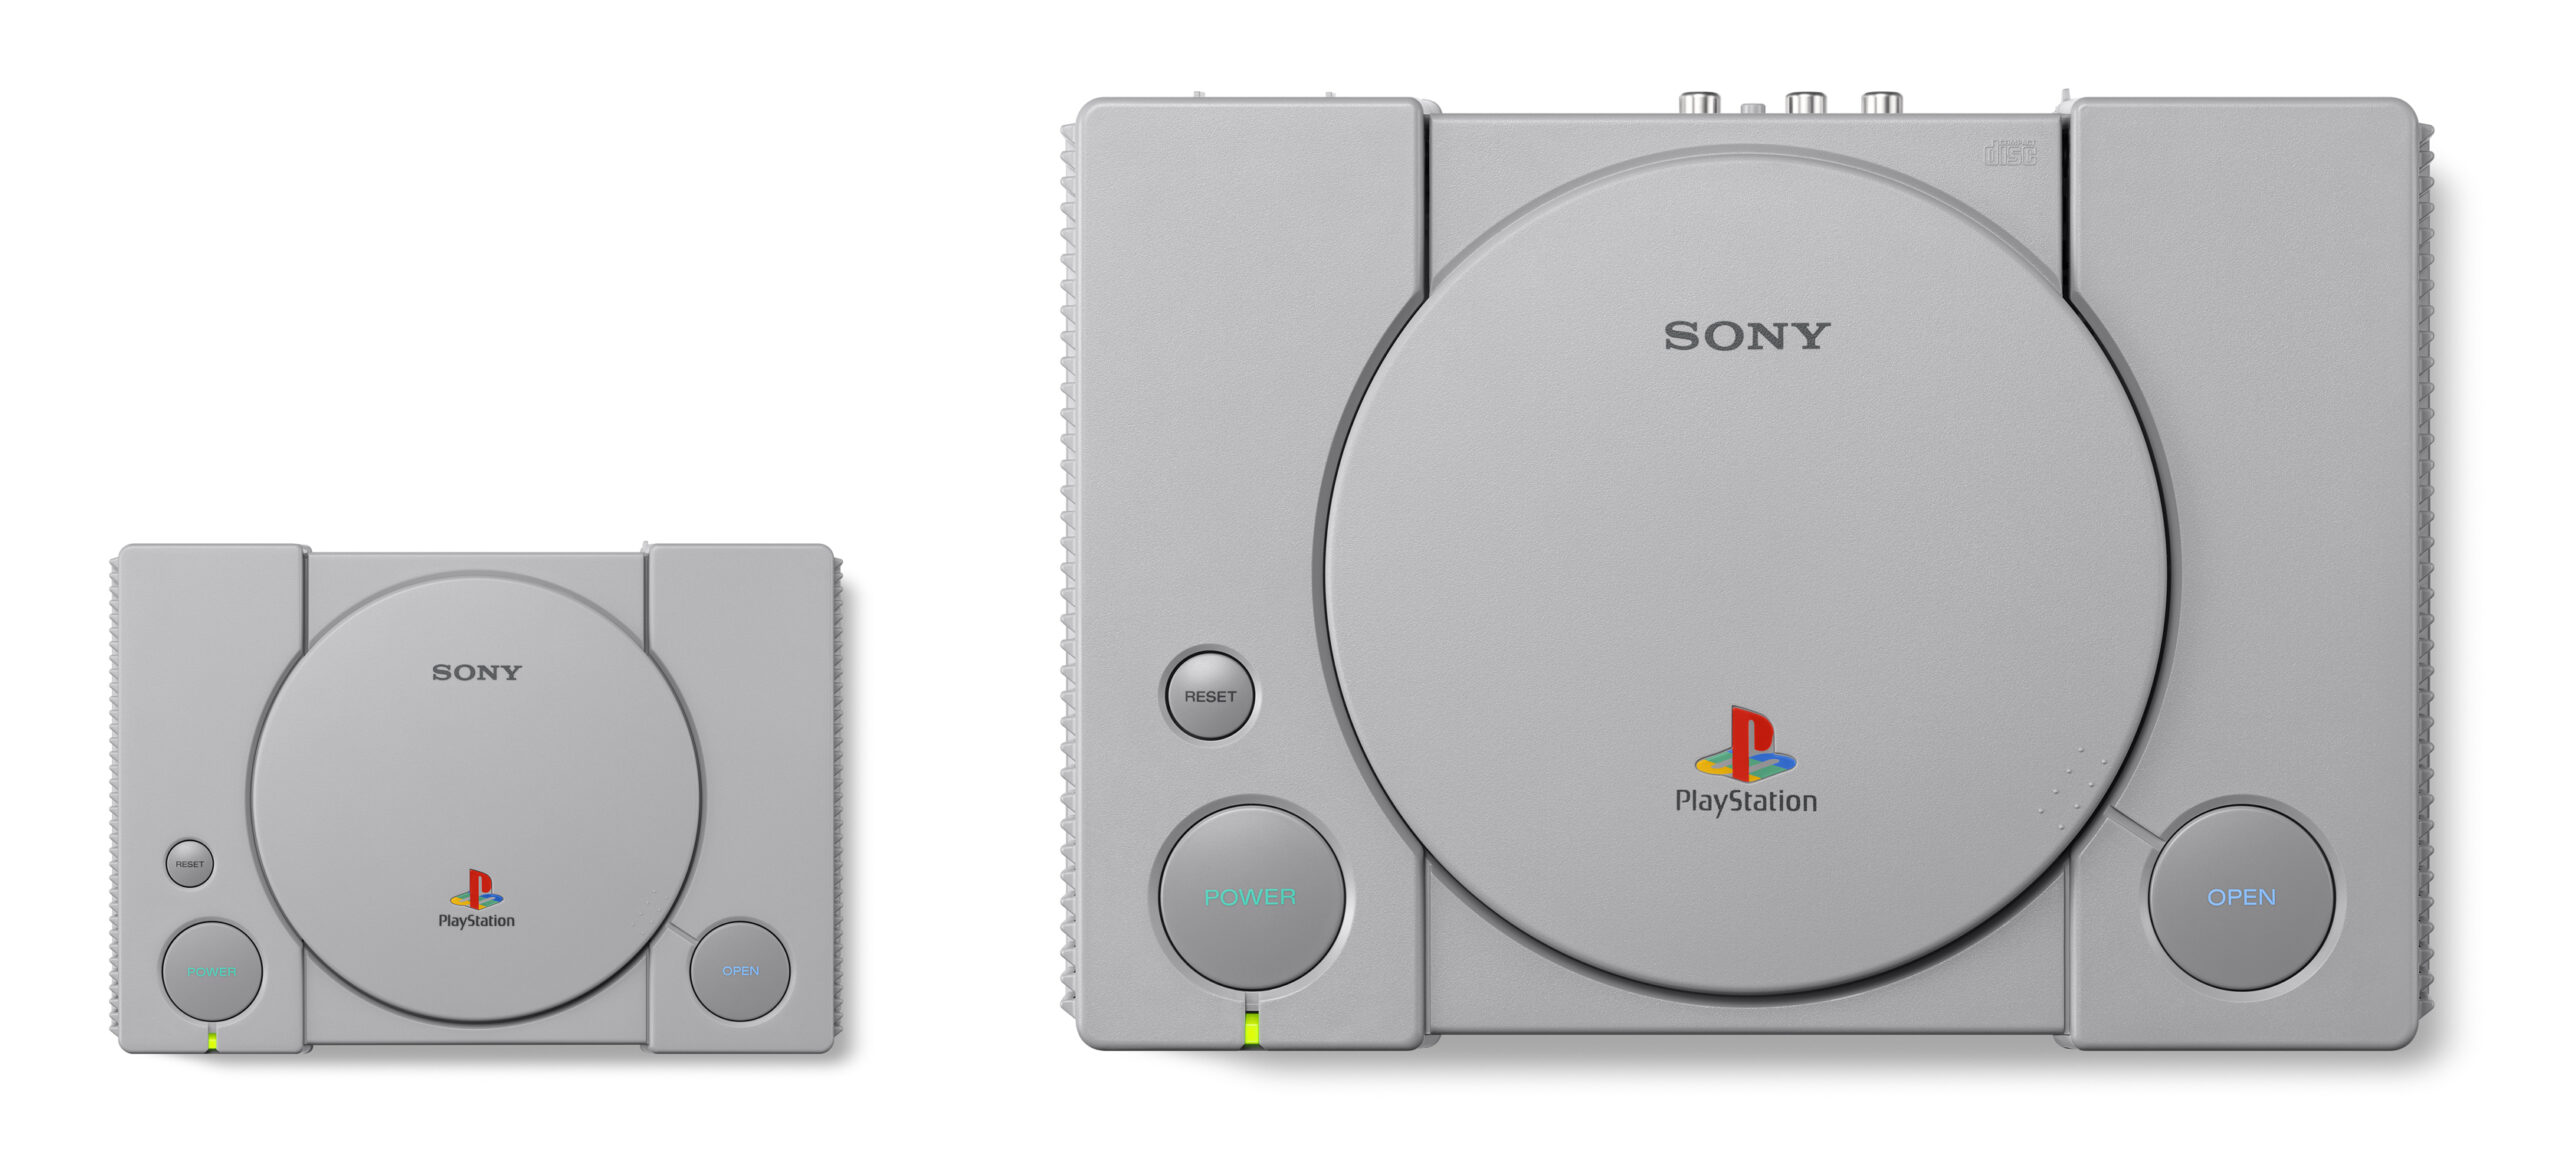 PlayStation-Classic_2018_09-19-18_002